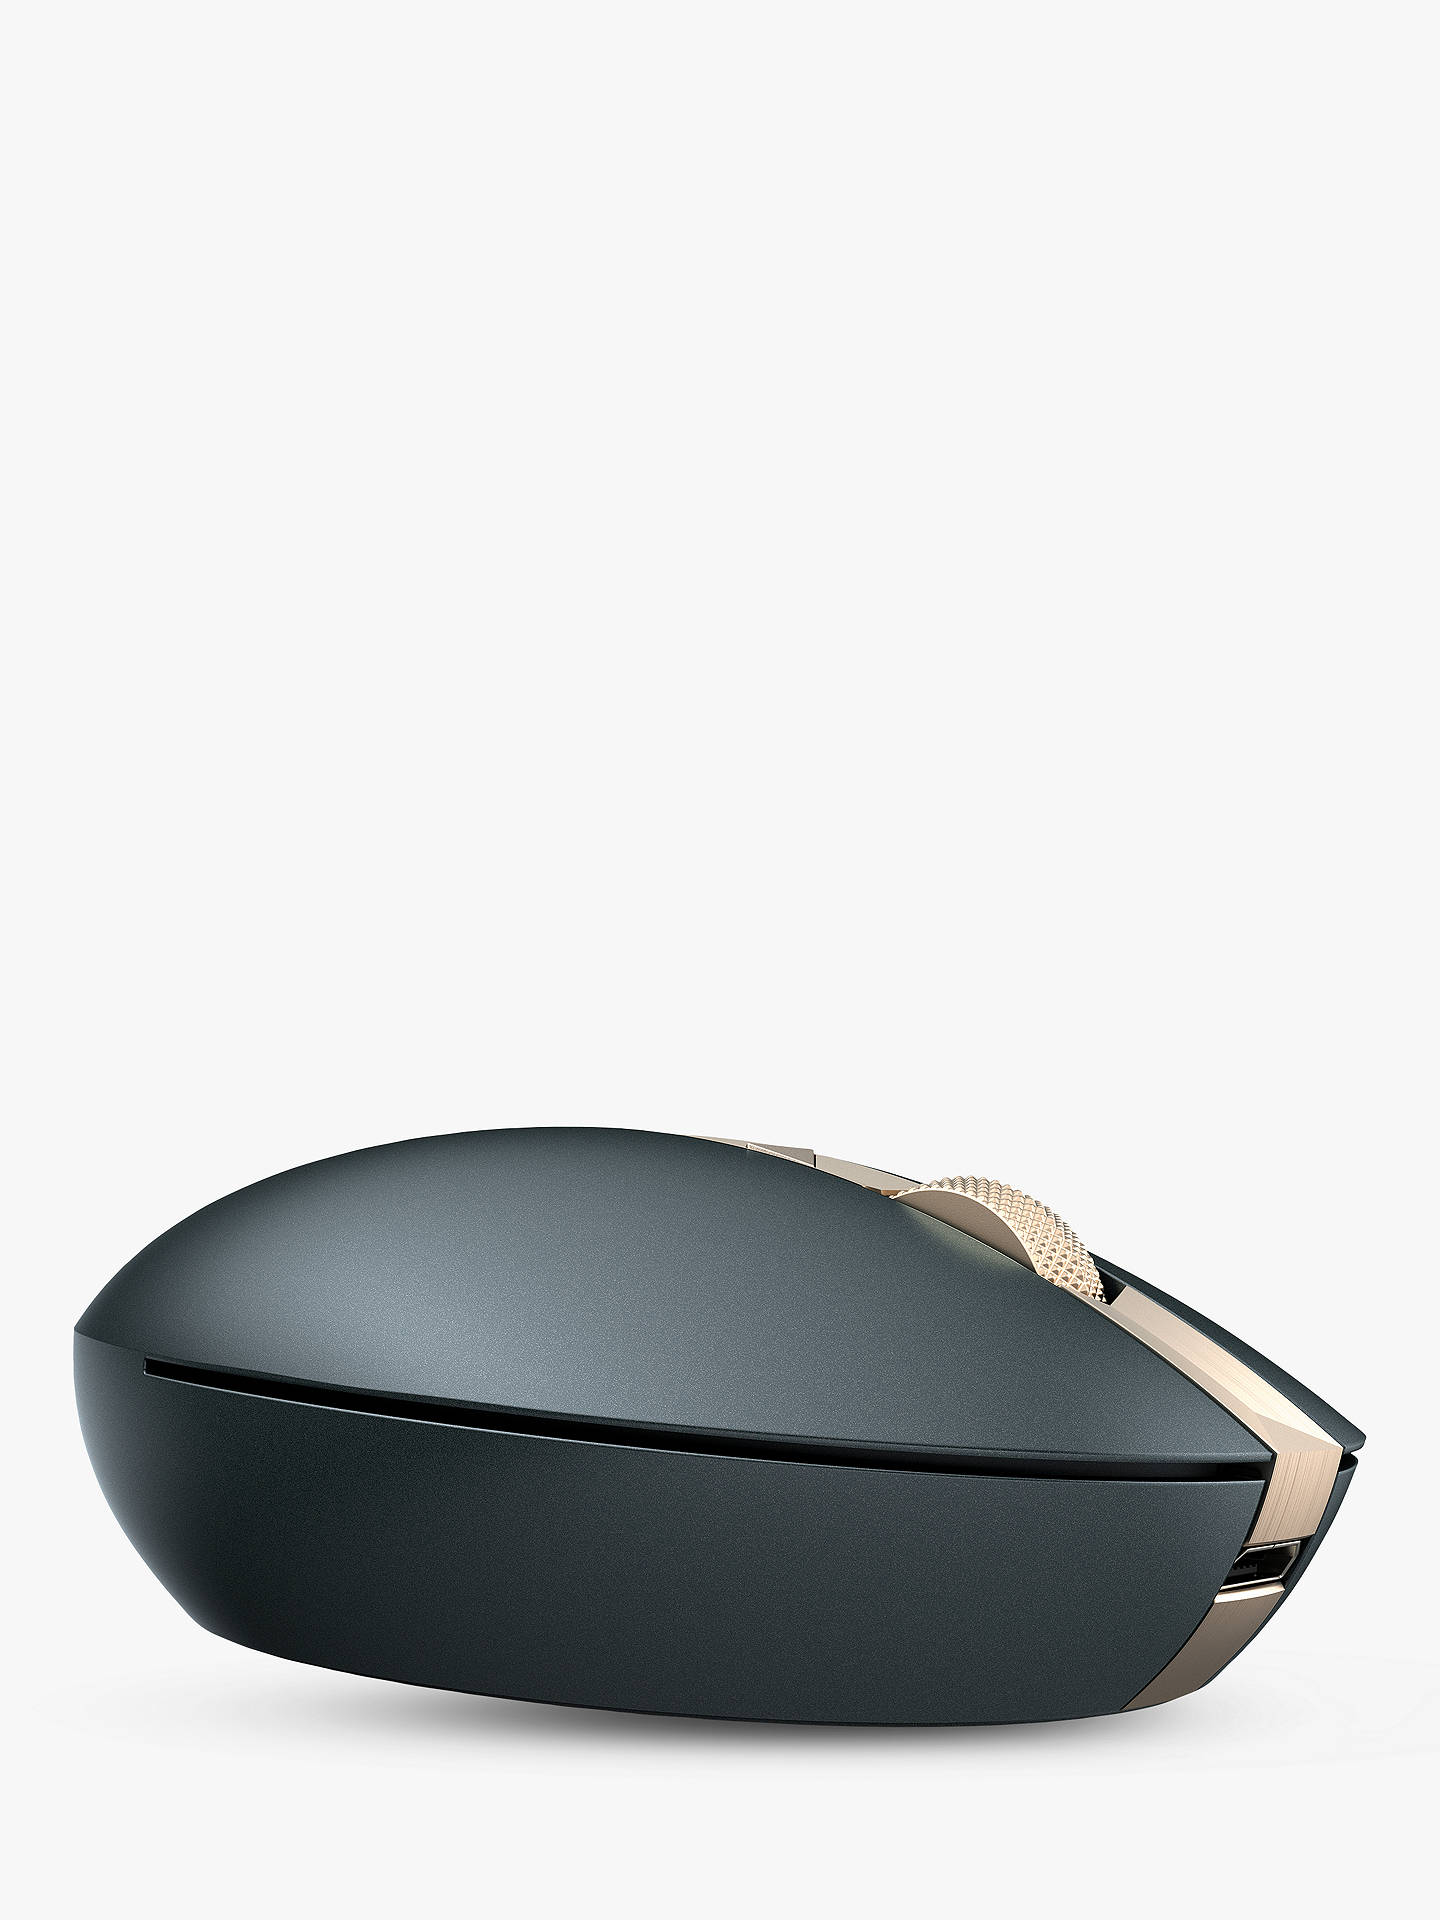 Buy HP Spectre Rechargeable Mouse 700 Online at johnlewis.com